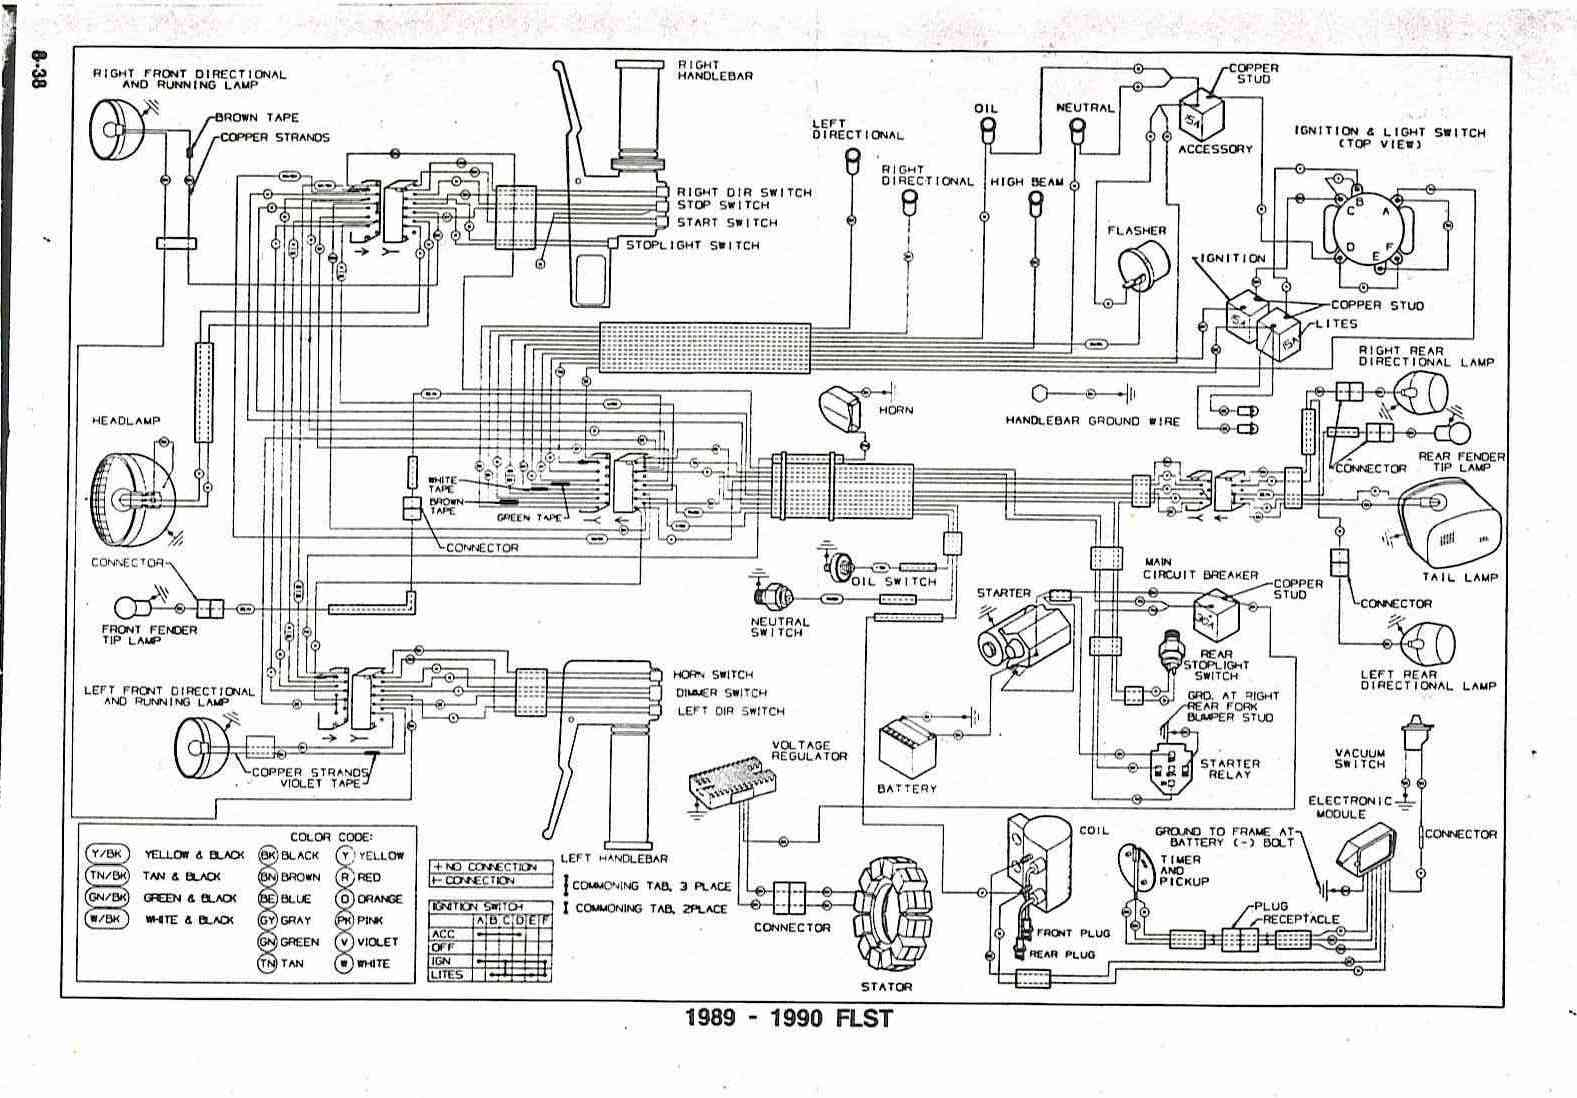 951HD_wireing_schematic2 harley wiring diagrams harley davidson golf cart schematics harley davidson wiring diagram at n-0.co